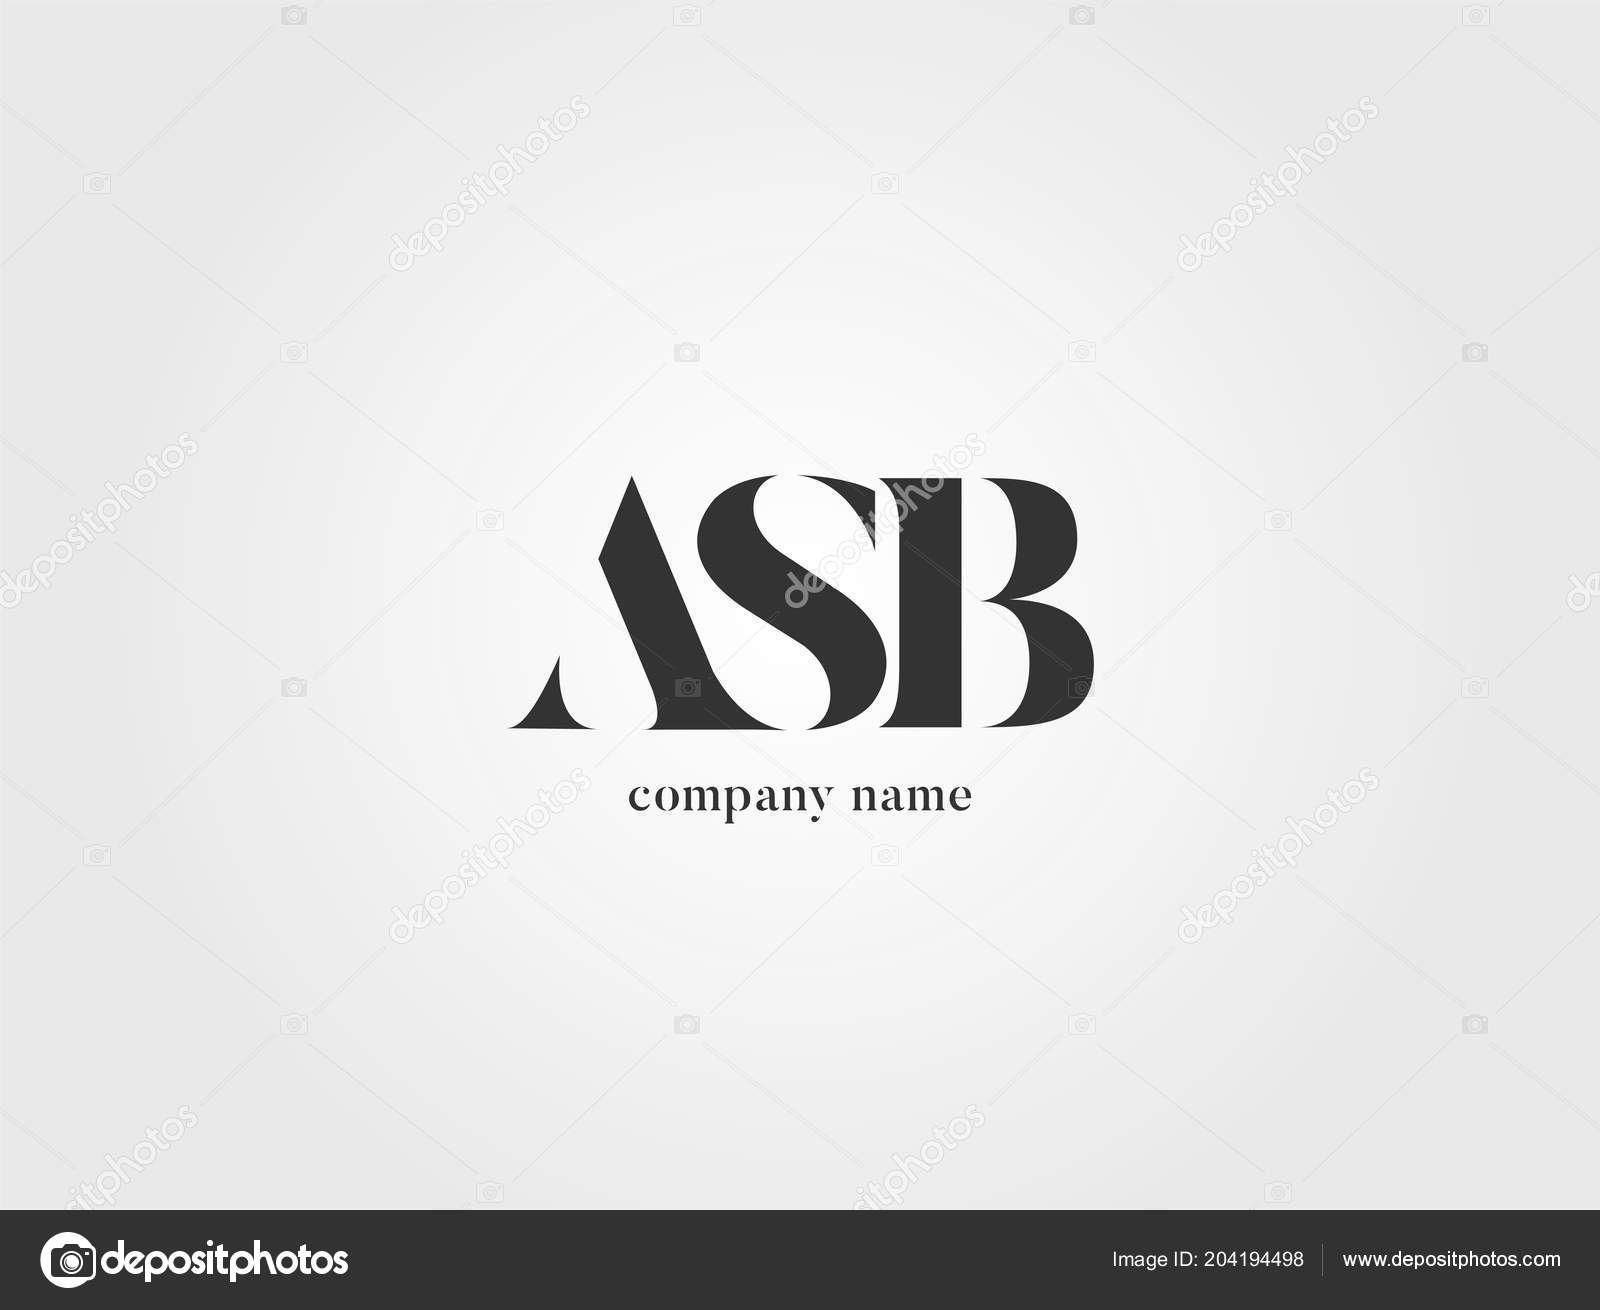 Letters Logo Asb Template Business Banner — Stock Vector